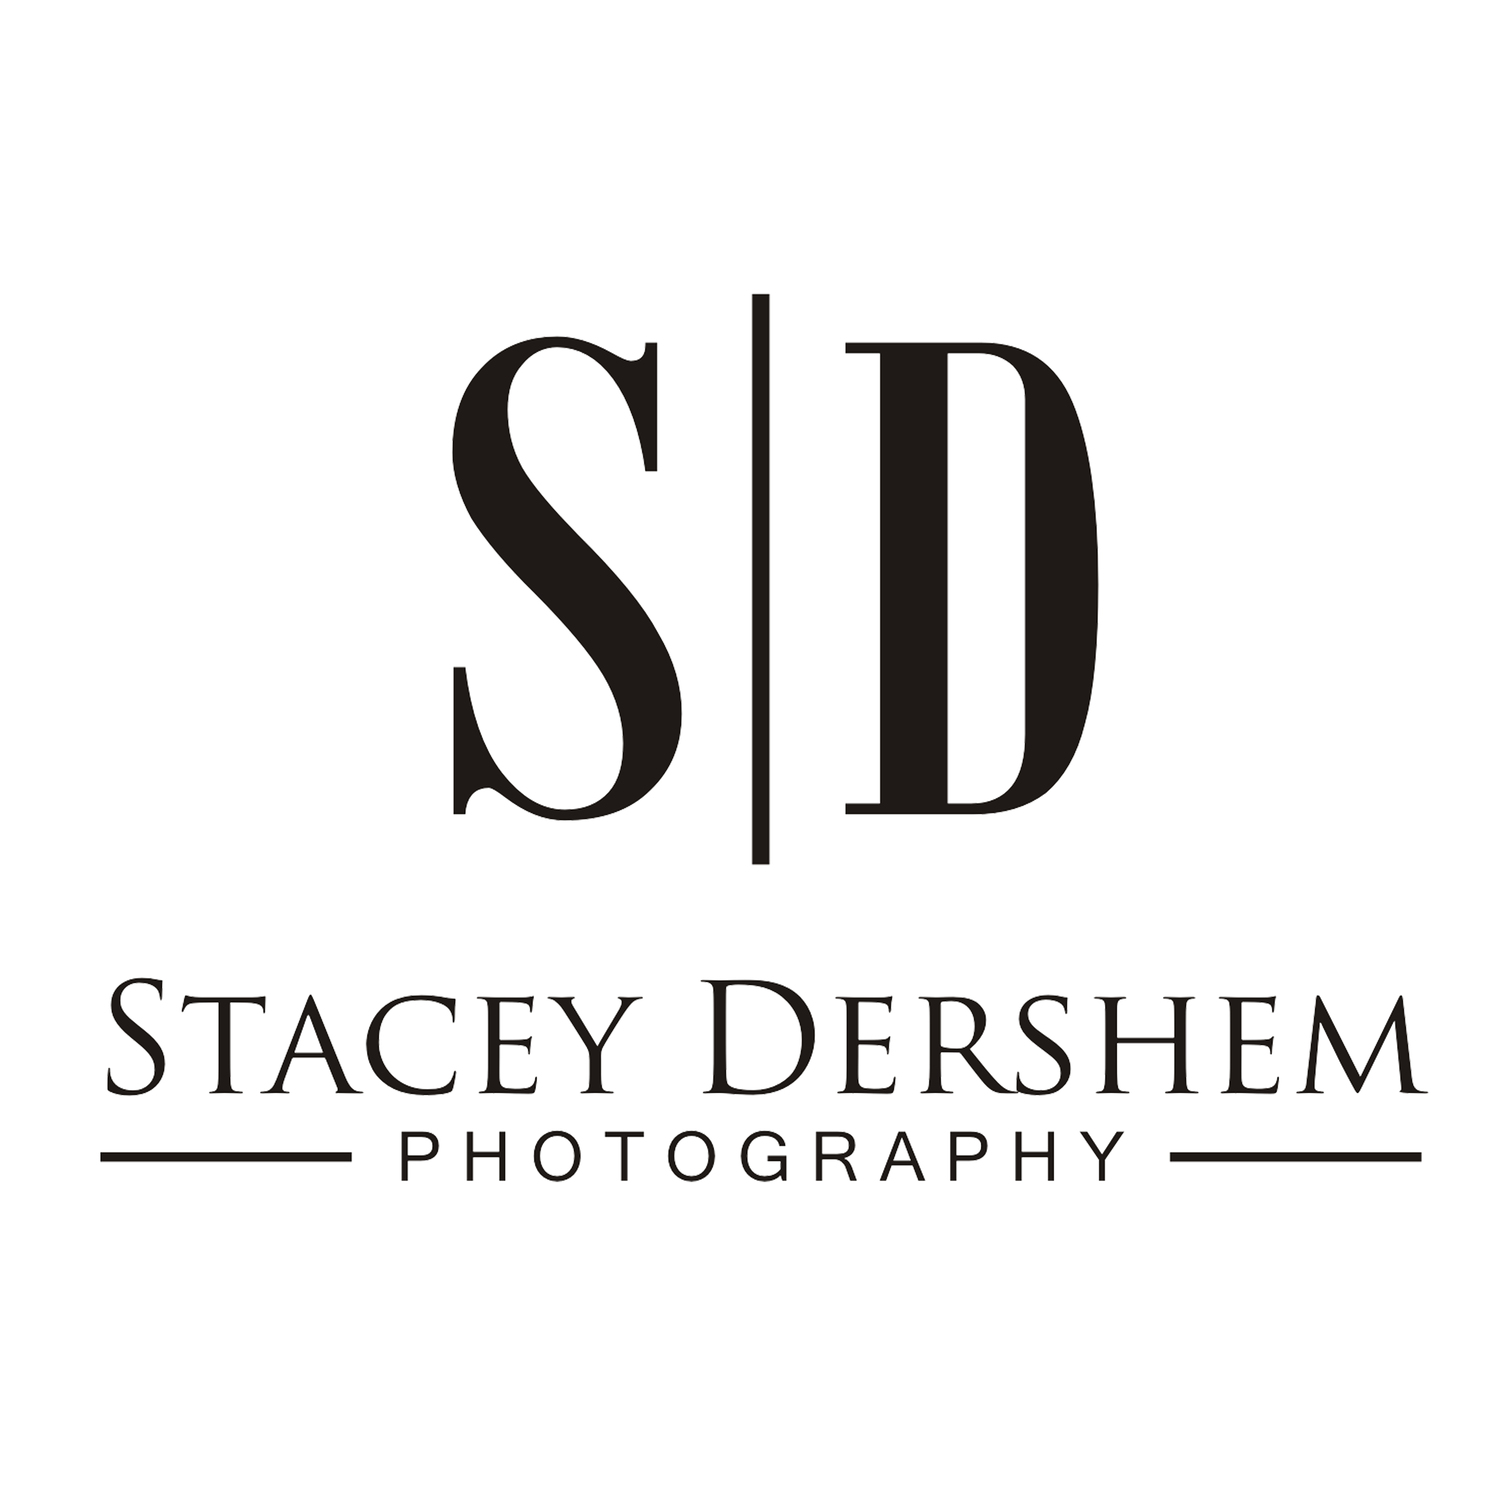 Stacey Dershem Photography